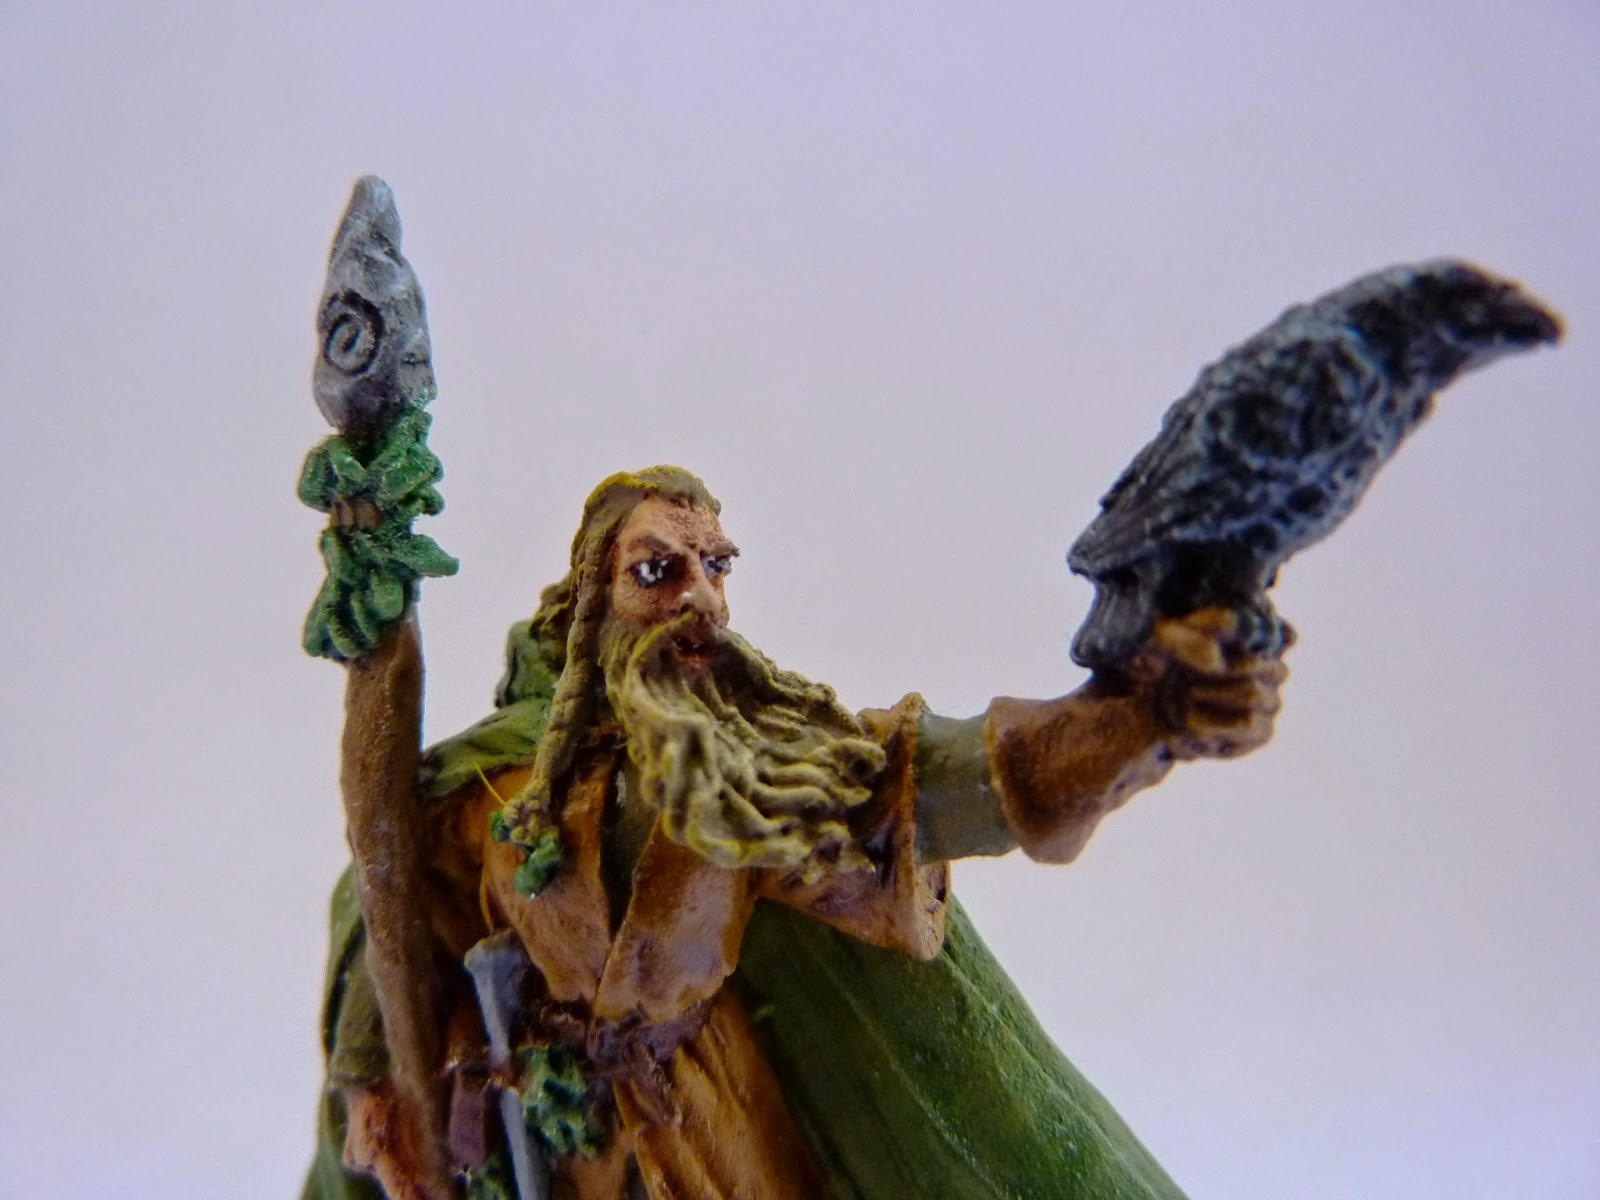 Radagast in the style of a Warhammer Empire Jade Wizard